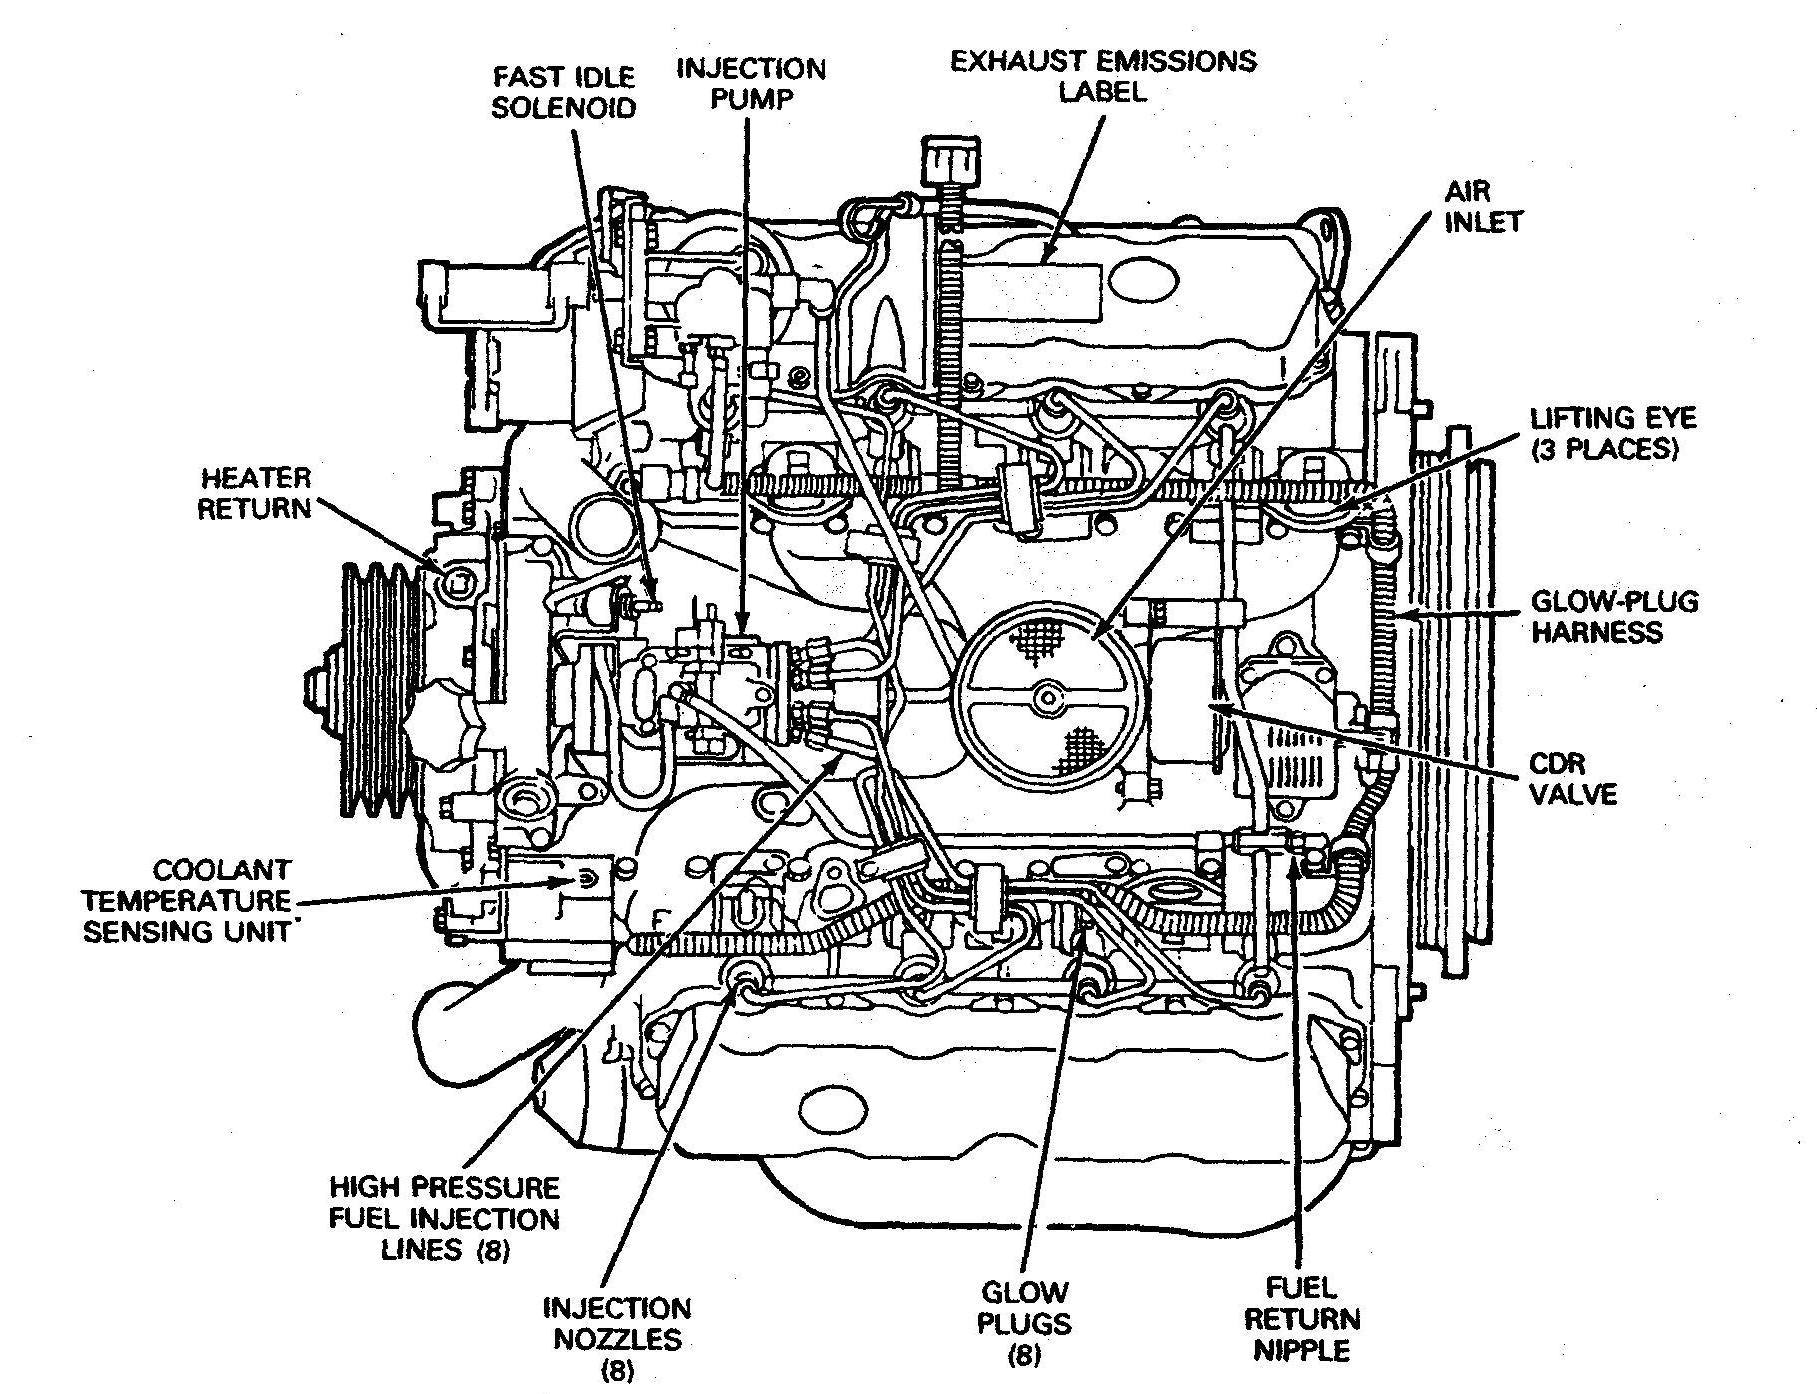 Basic Automotive Technology Engines